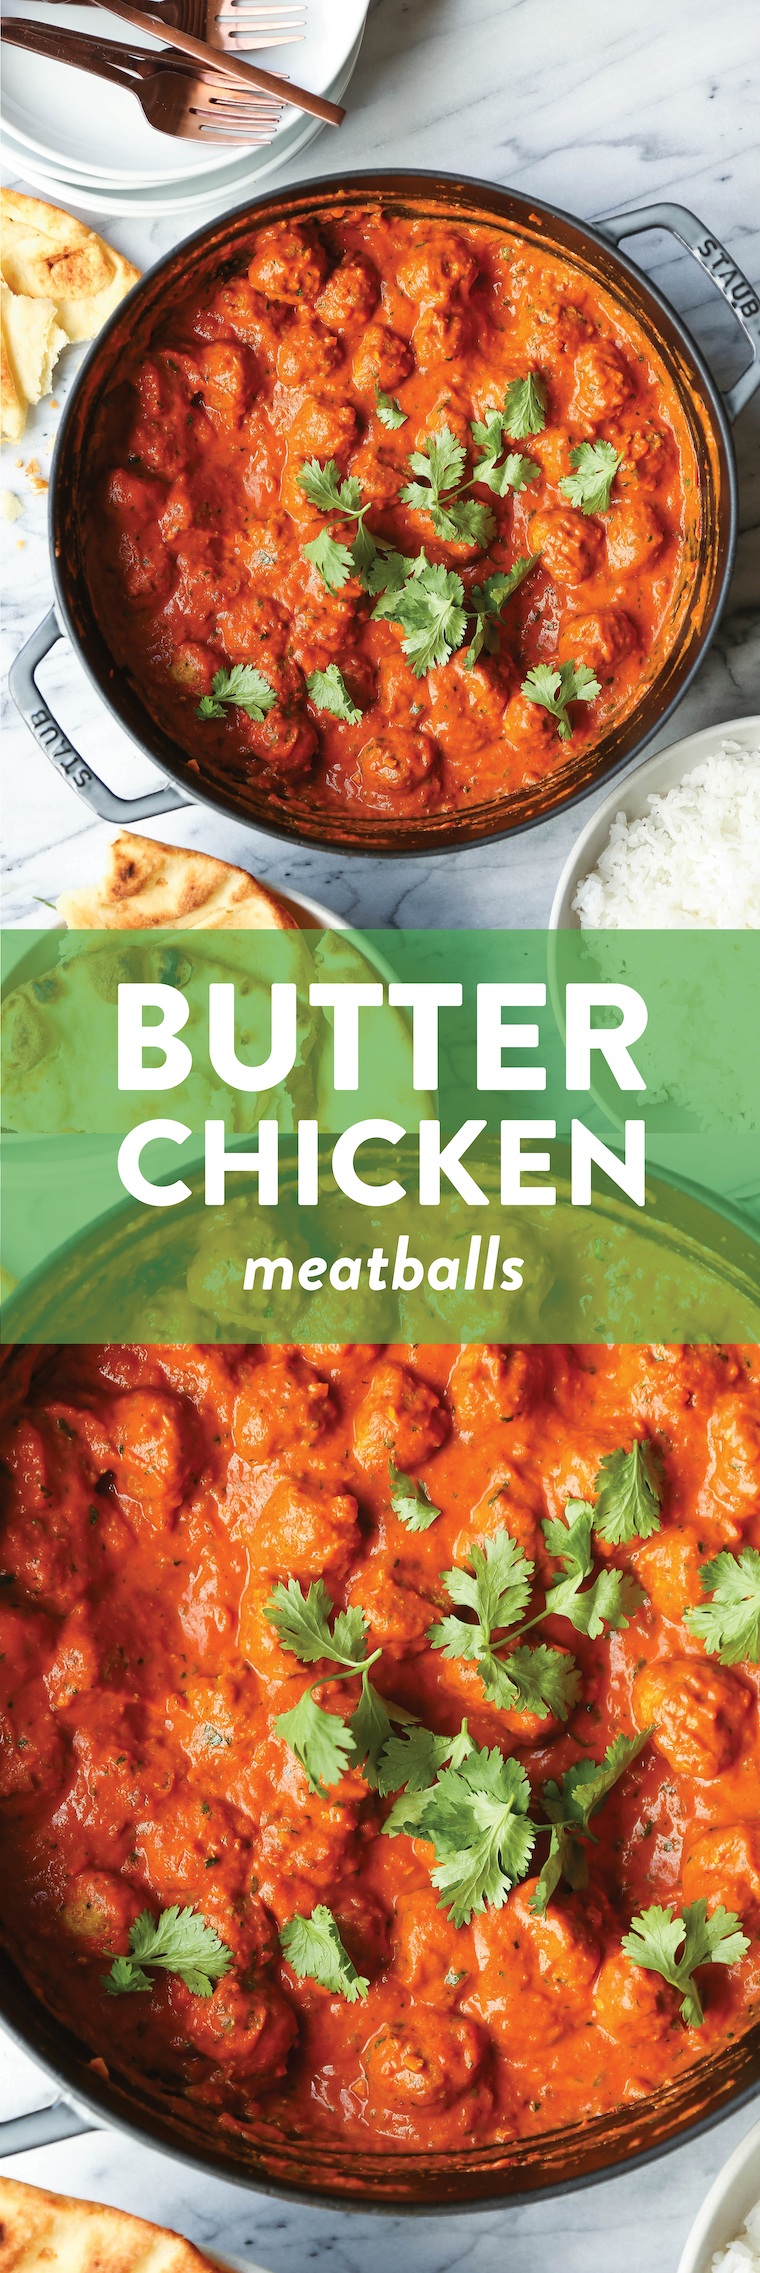 Butter Chicken Meatballs - Everyone's favorite butter chicken made into the most tender, most amazing meatballs! So saucy, so good. Serve with rice + naan!